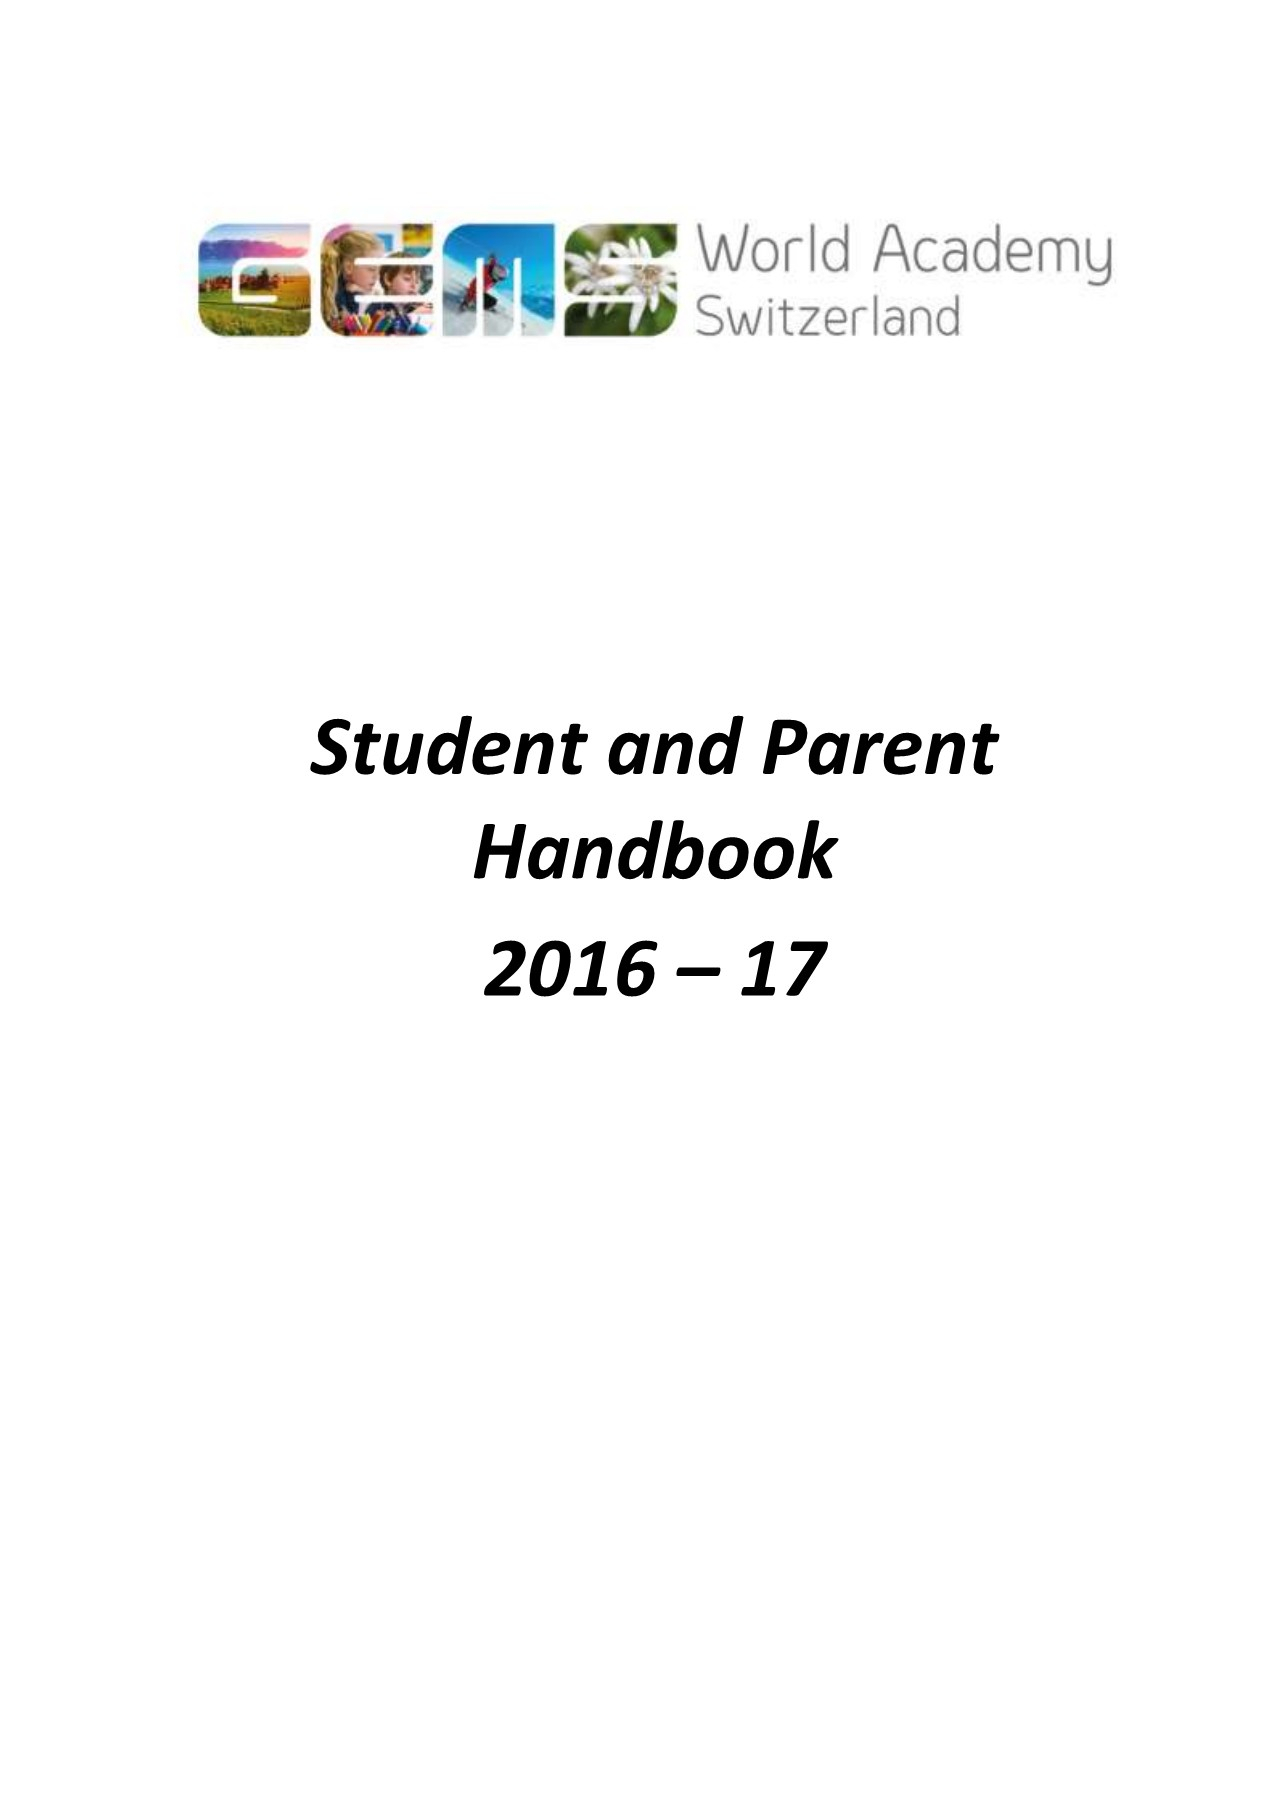 Gwaswitzerlandstudentparenthandbook201617 Pages 1  45 intended for Gems World Academy Academic Calendar